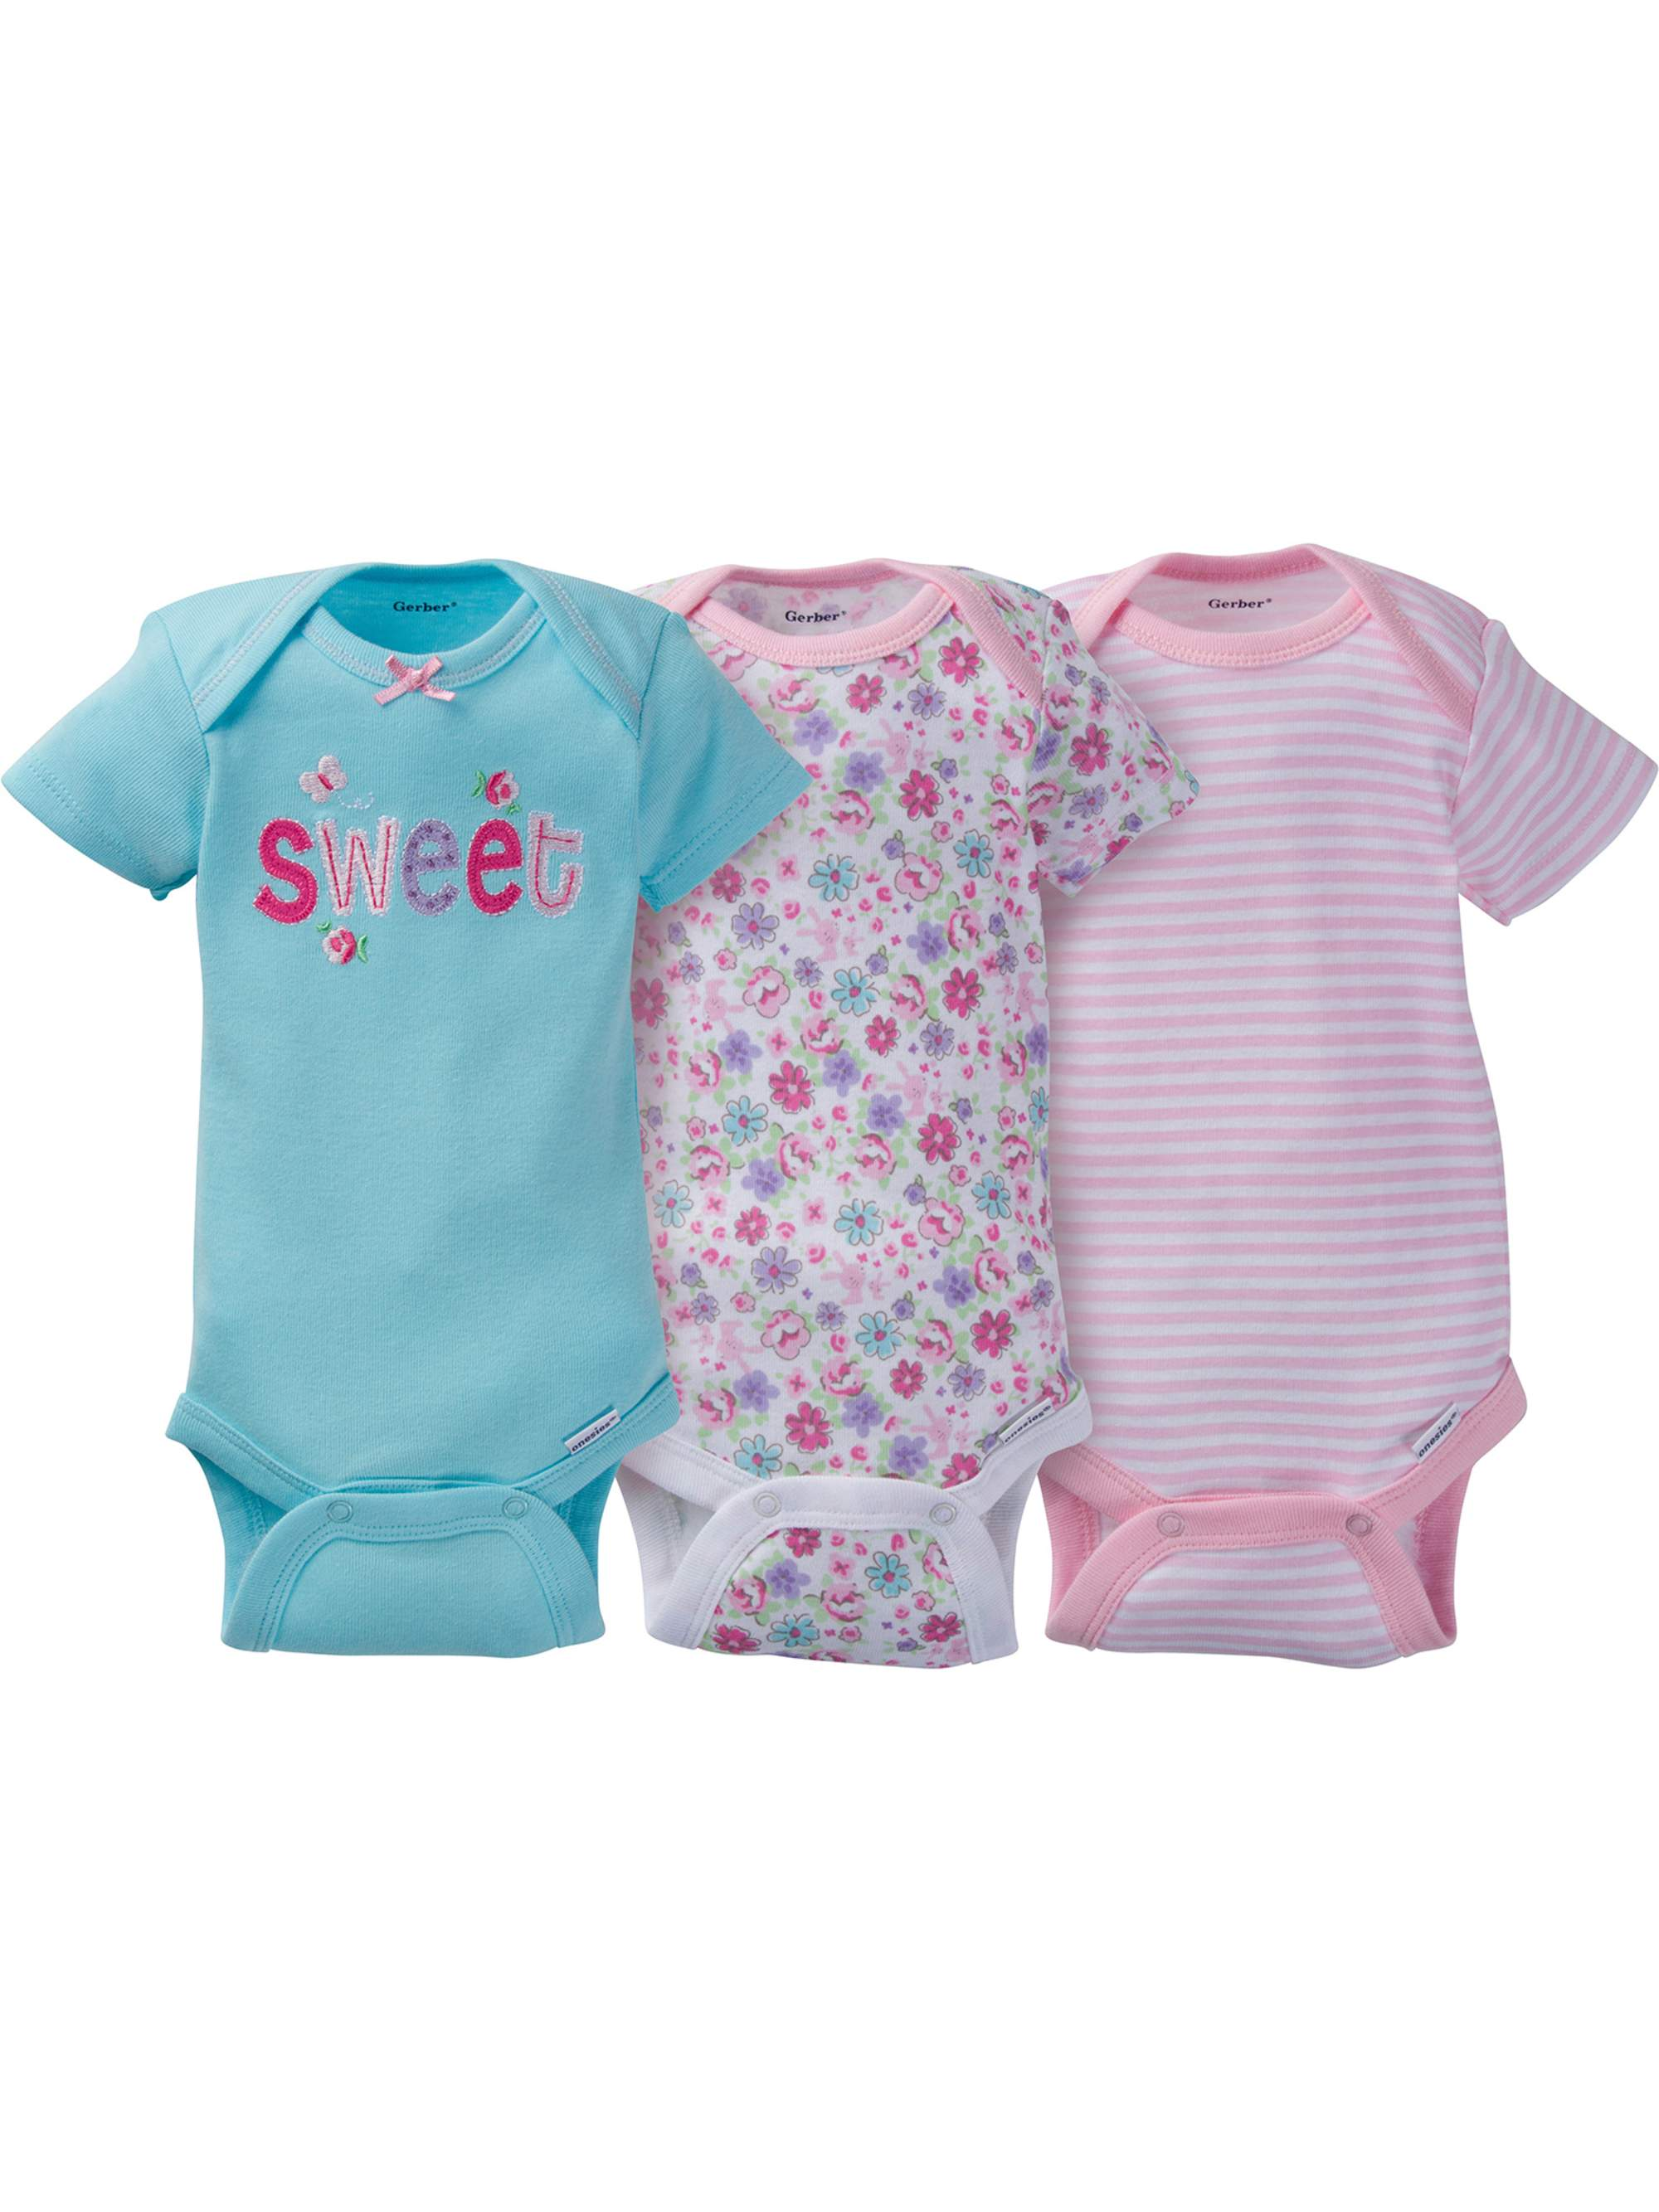 329912659 Gerber - Gerber Newborn Baby Girl Assorted Short Sleeve Onesies Bodysuits,  3-Pack - Walmart.com